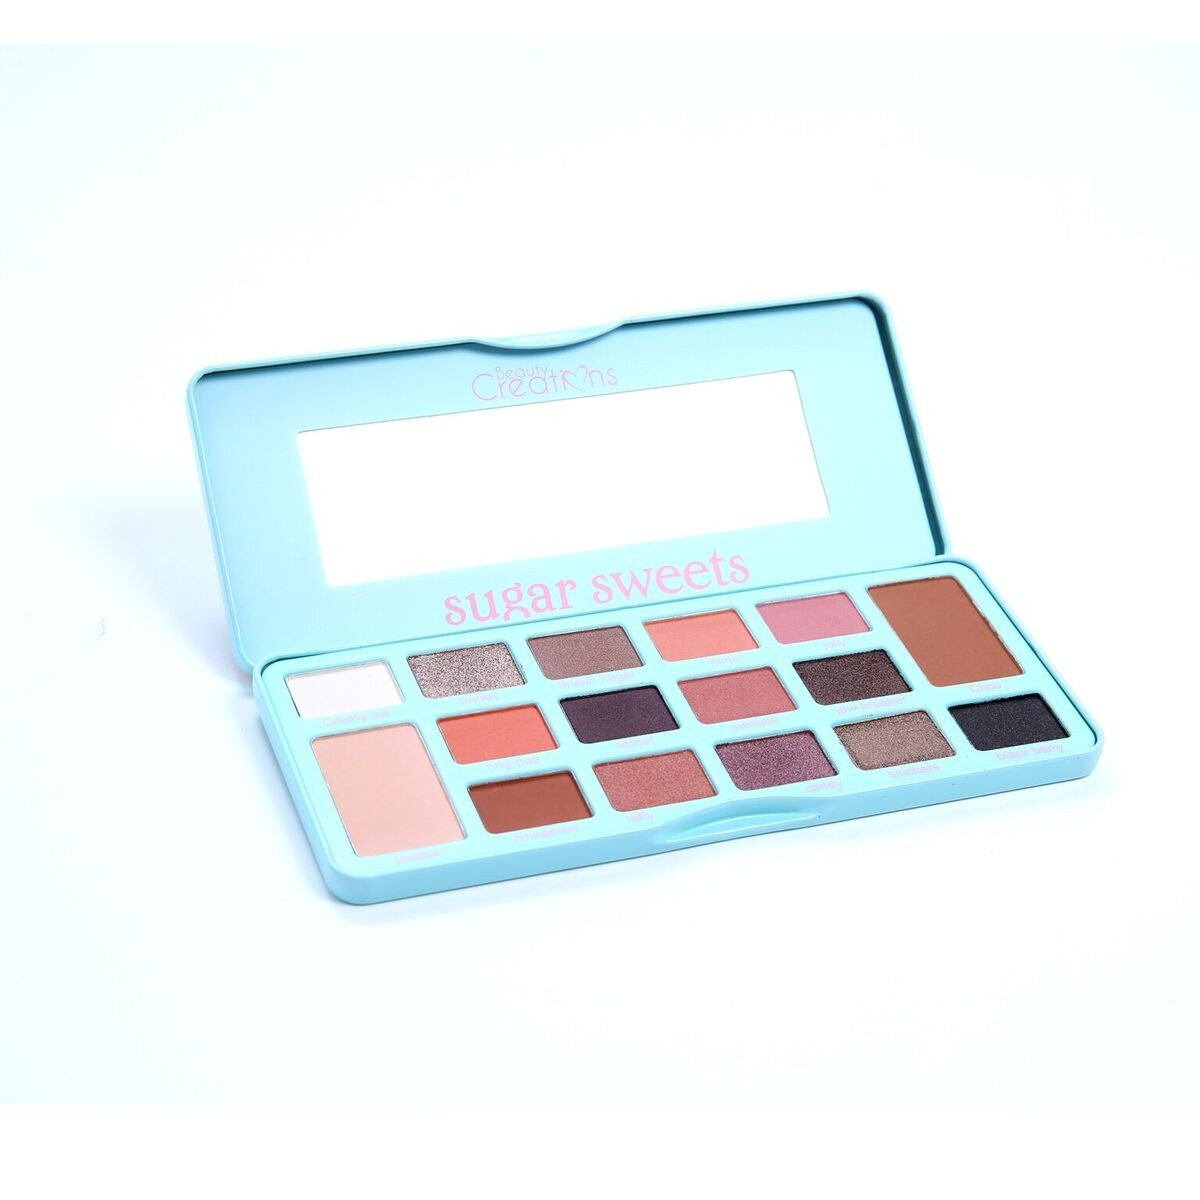 Sugar Sweets Eyeshdow Palette